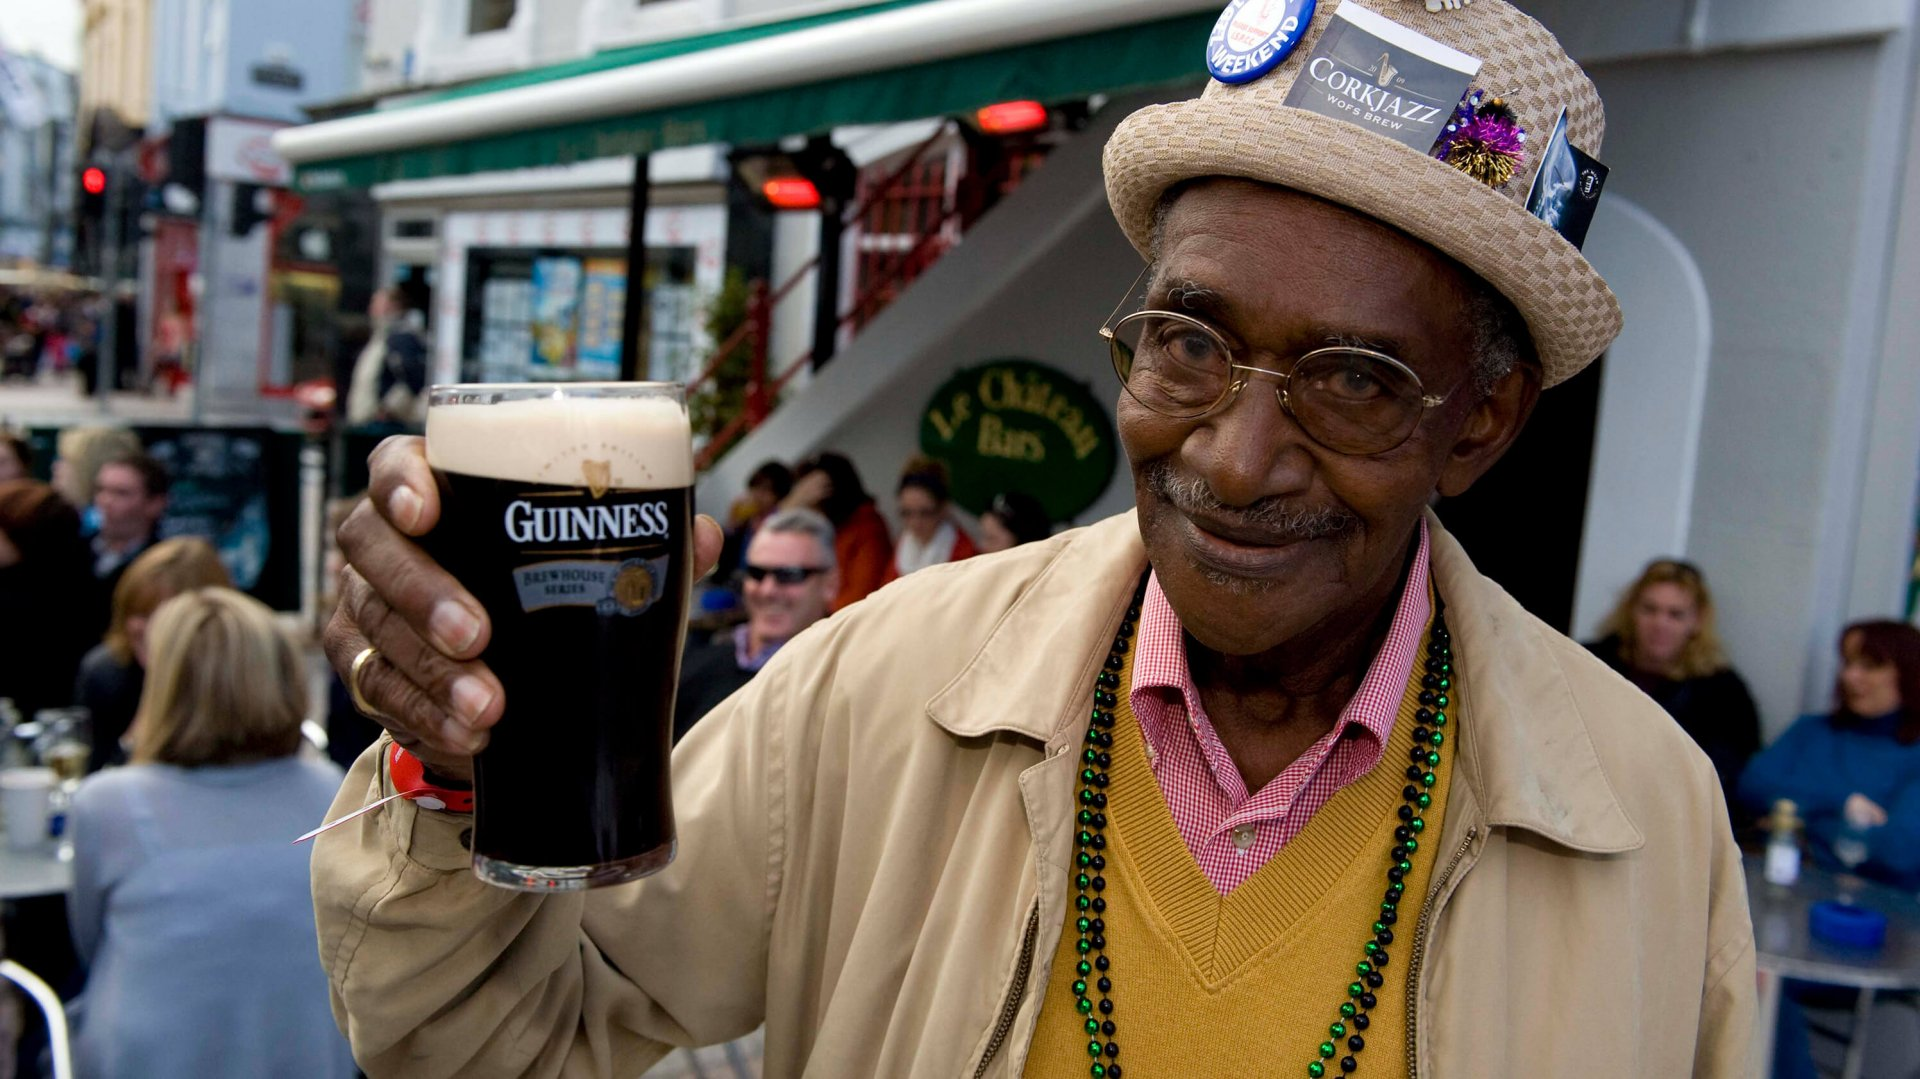 A happy man toasts the camera with a pint of Guinness